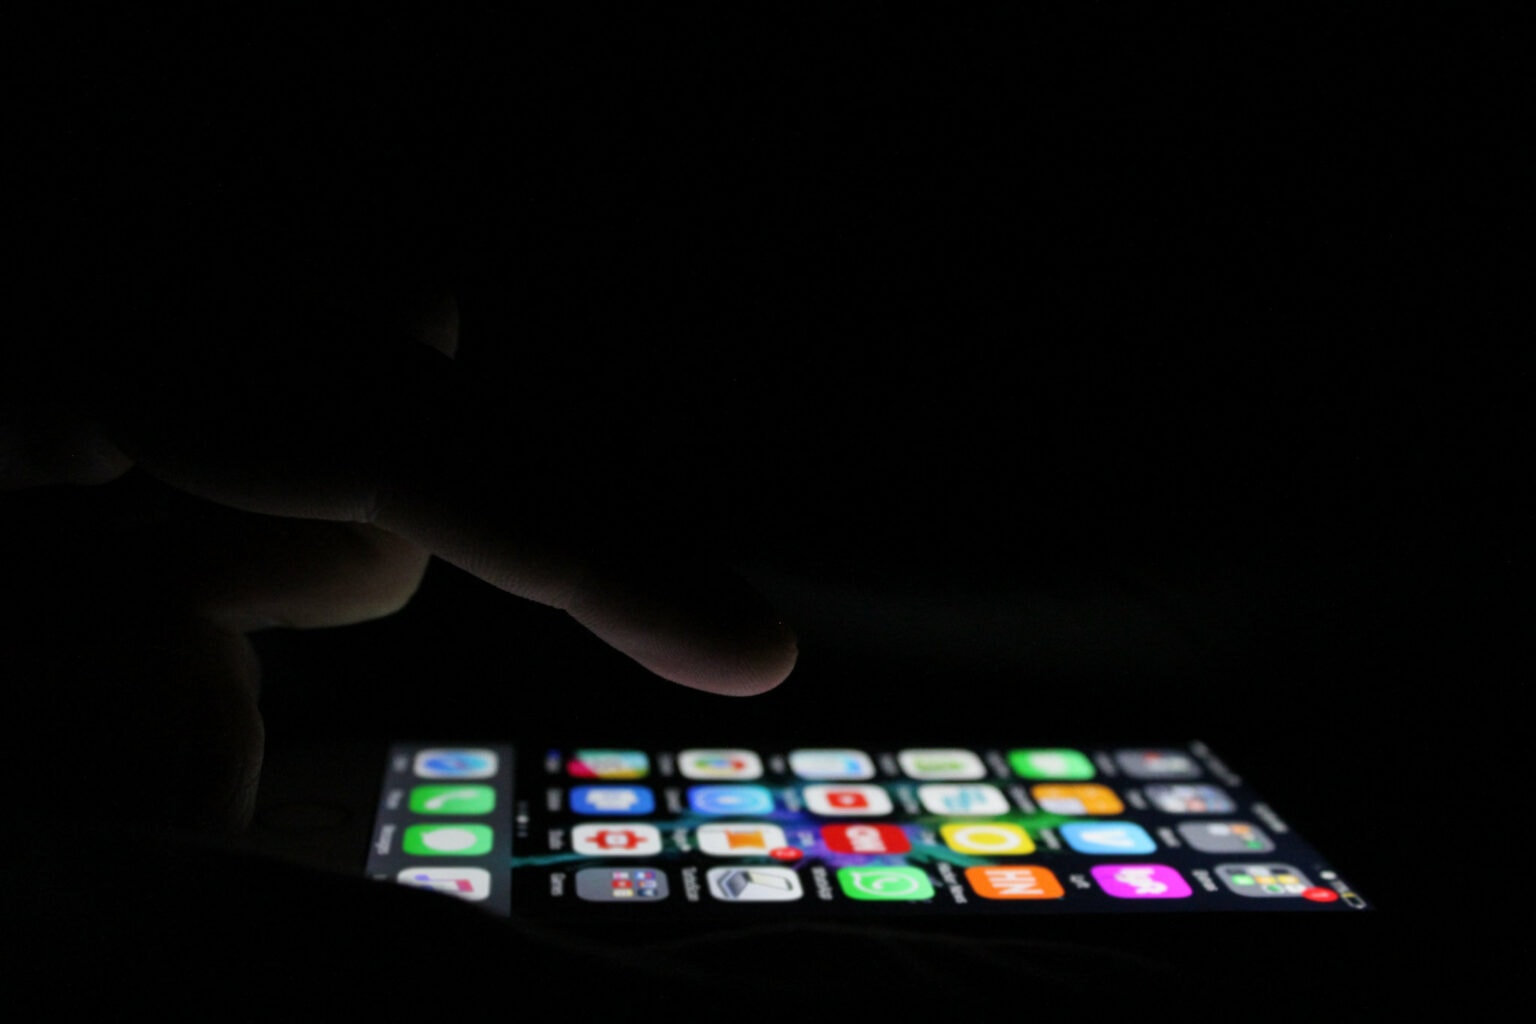 Apple urged to abandon child safety features